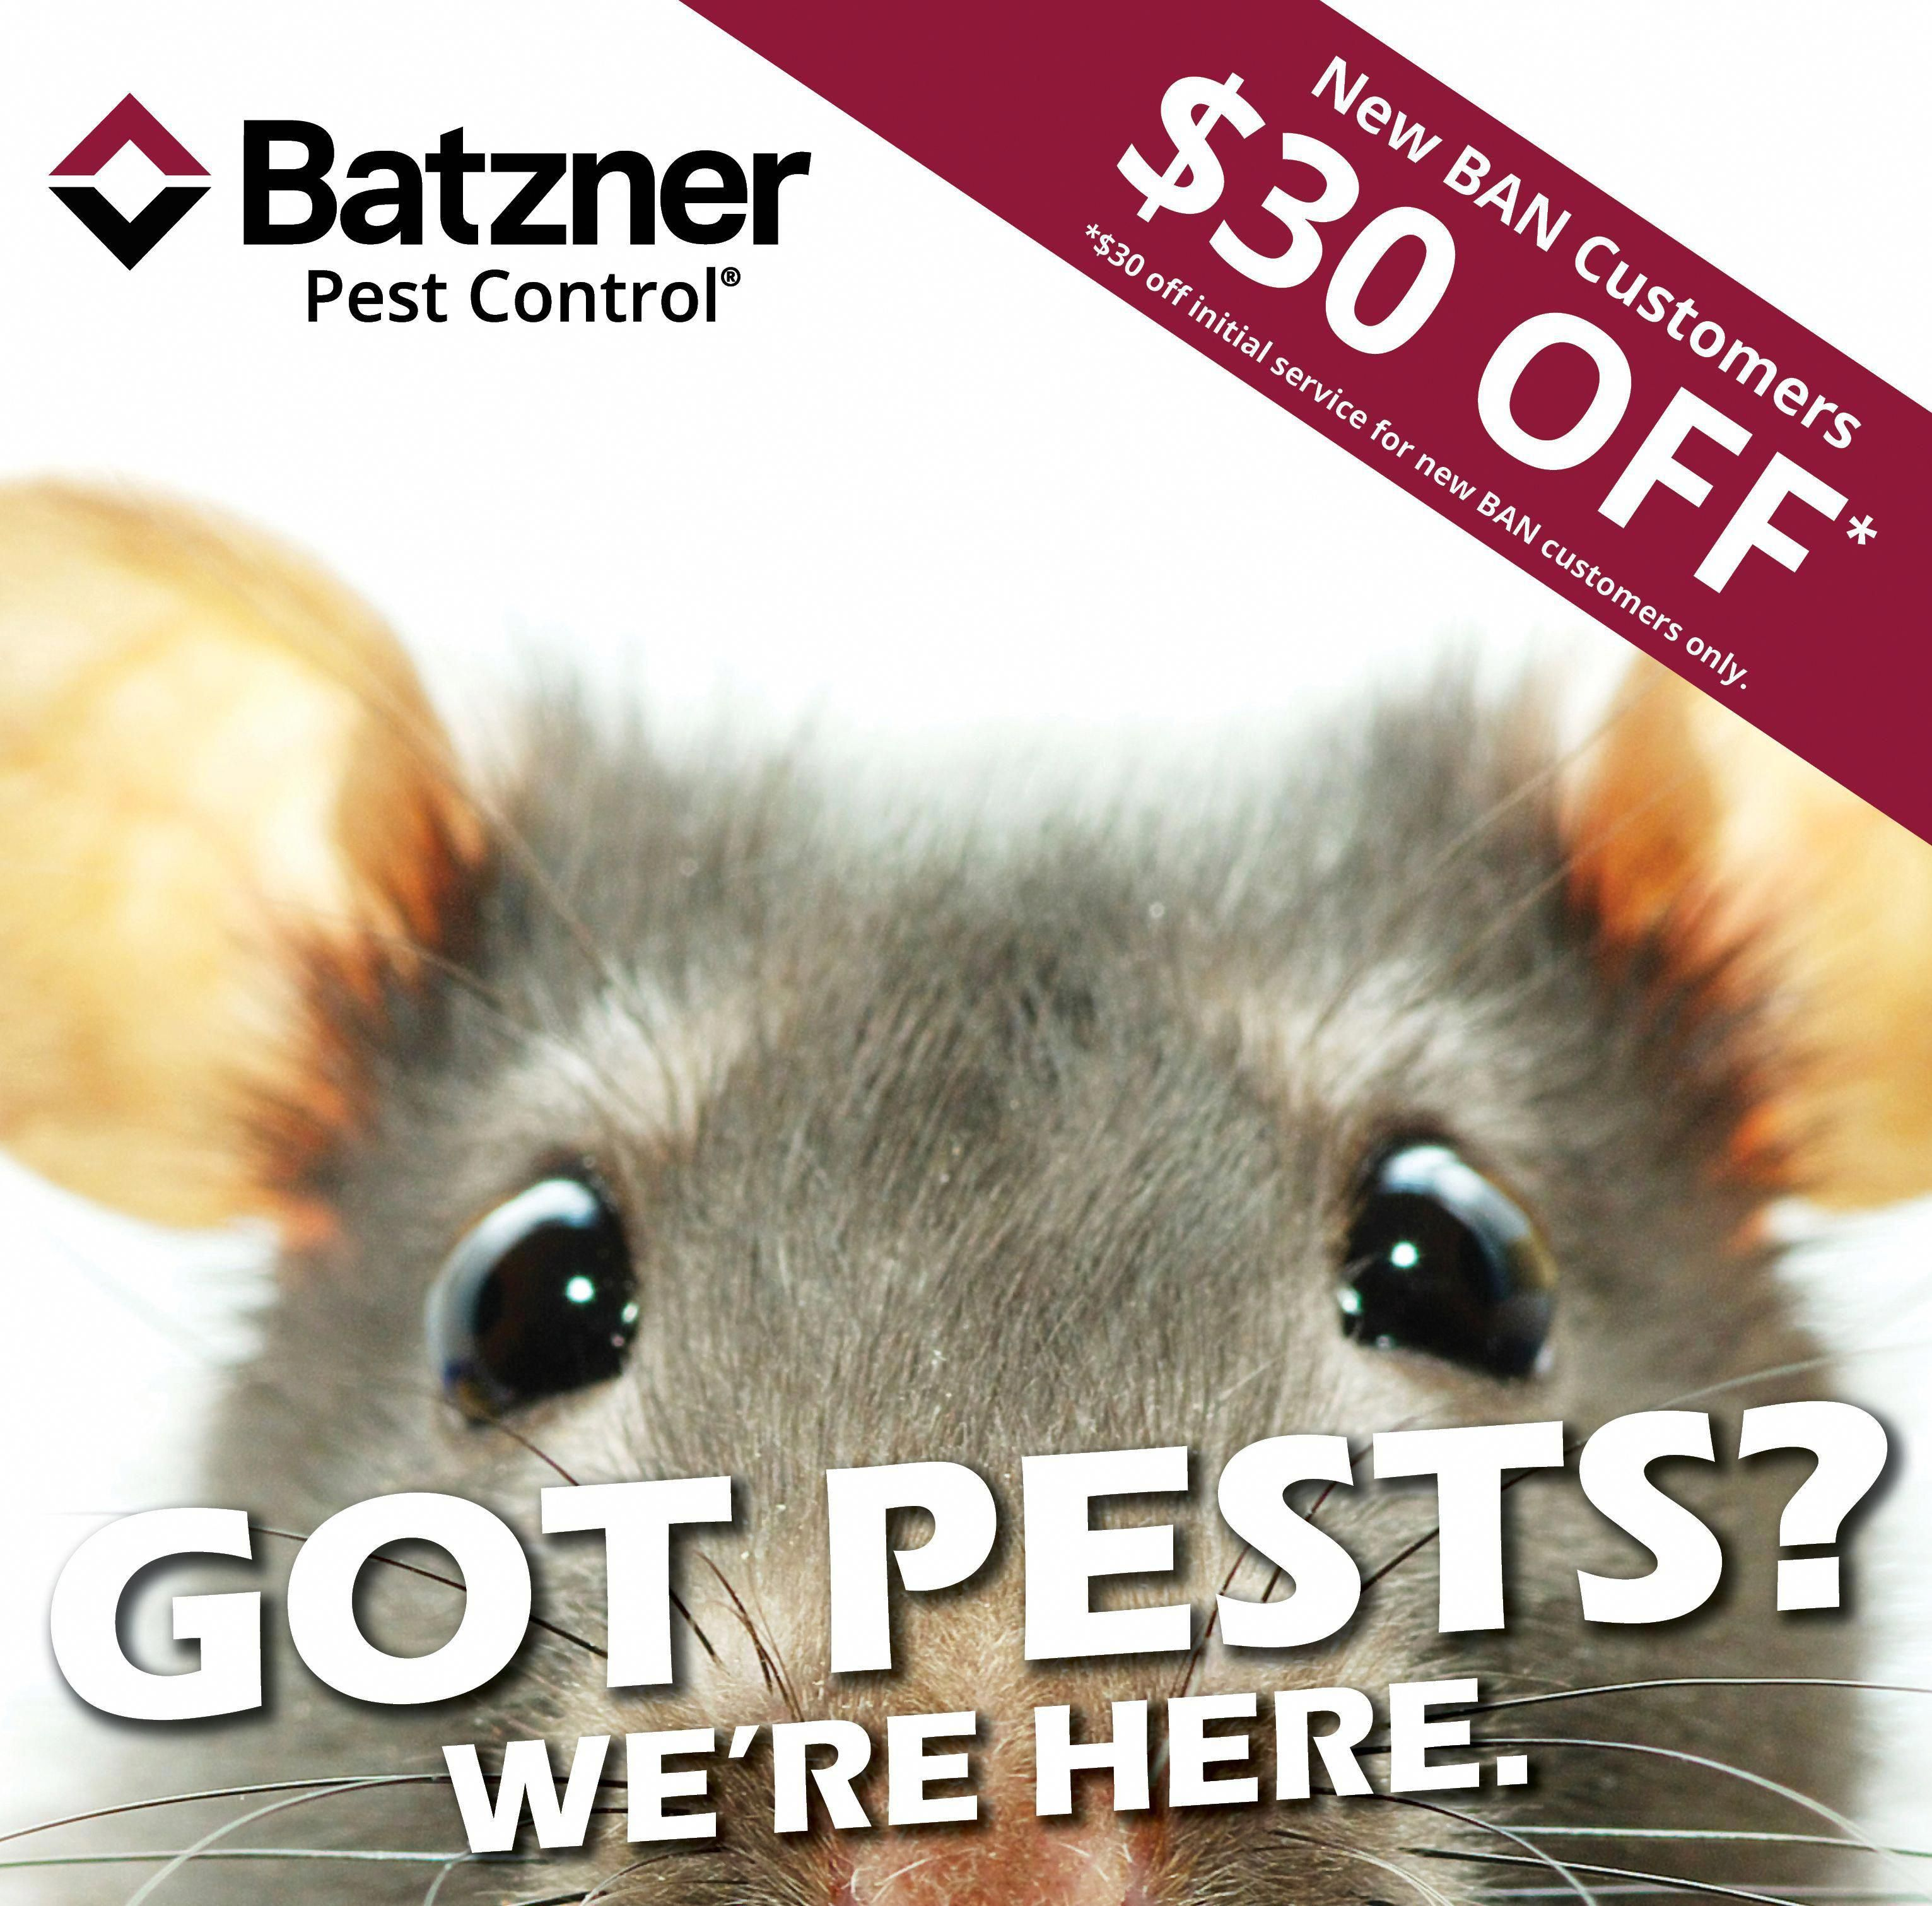 Rats Mice And Unicorns Call The Pest Control Experts In 2020 Pest Control Rat Control Pests